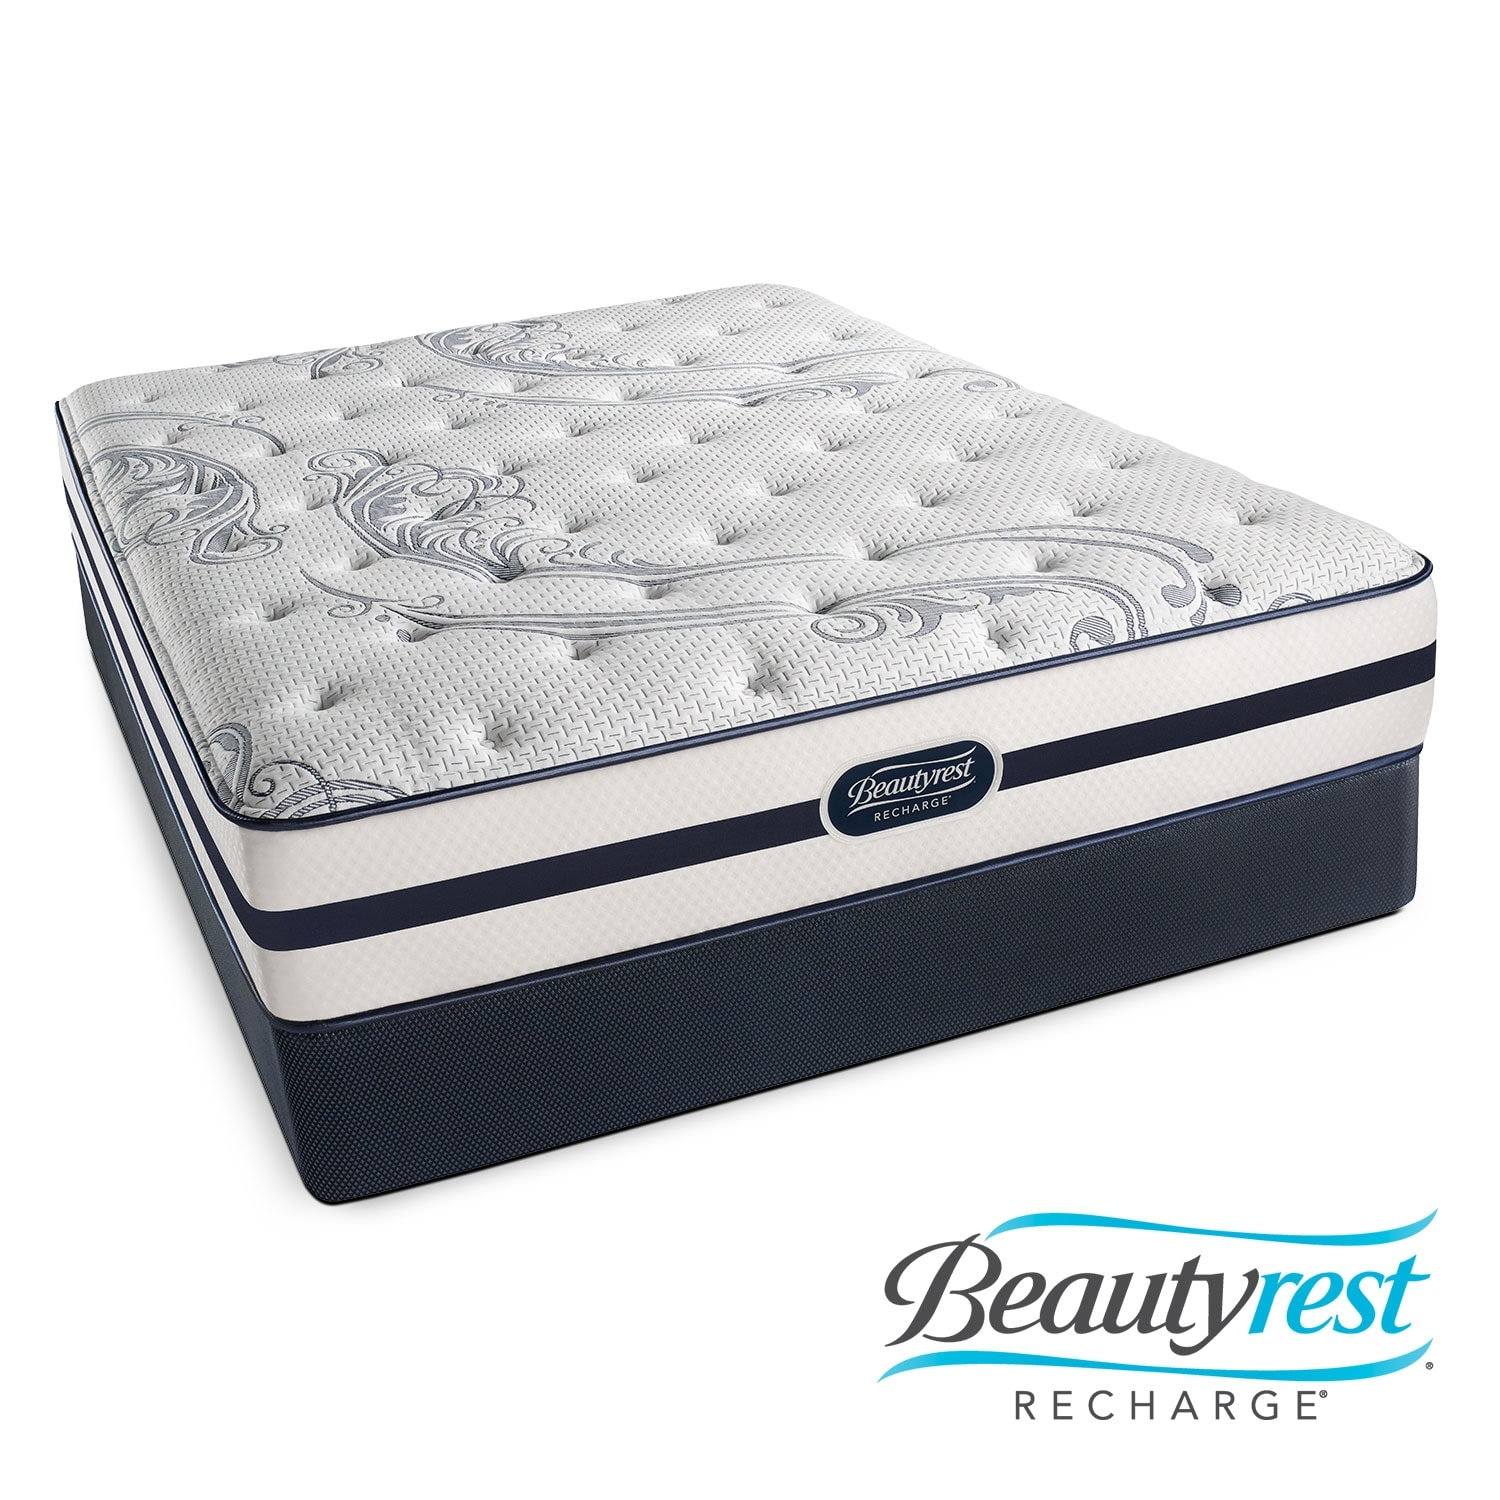 Mattresses and Bedding - Alisa Luxury Firm King Mattress/Split Low-Profile Foundation Set